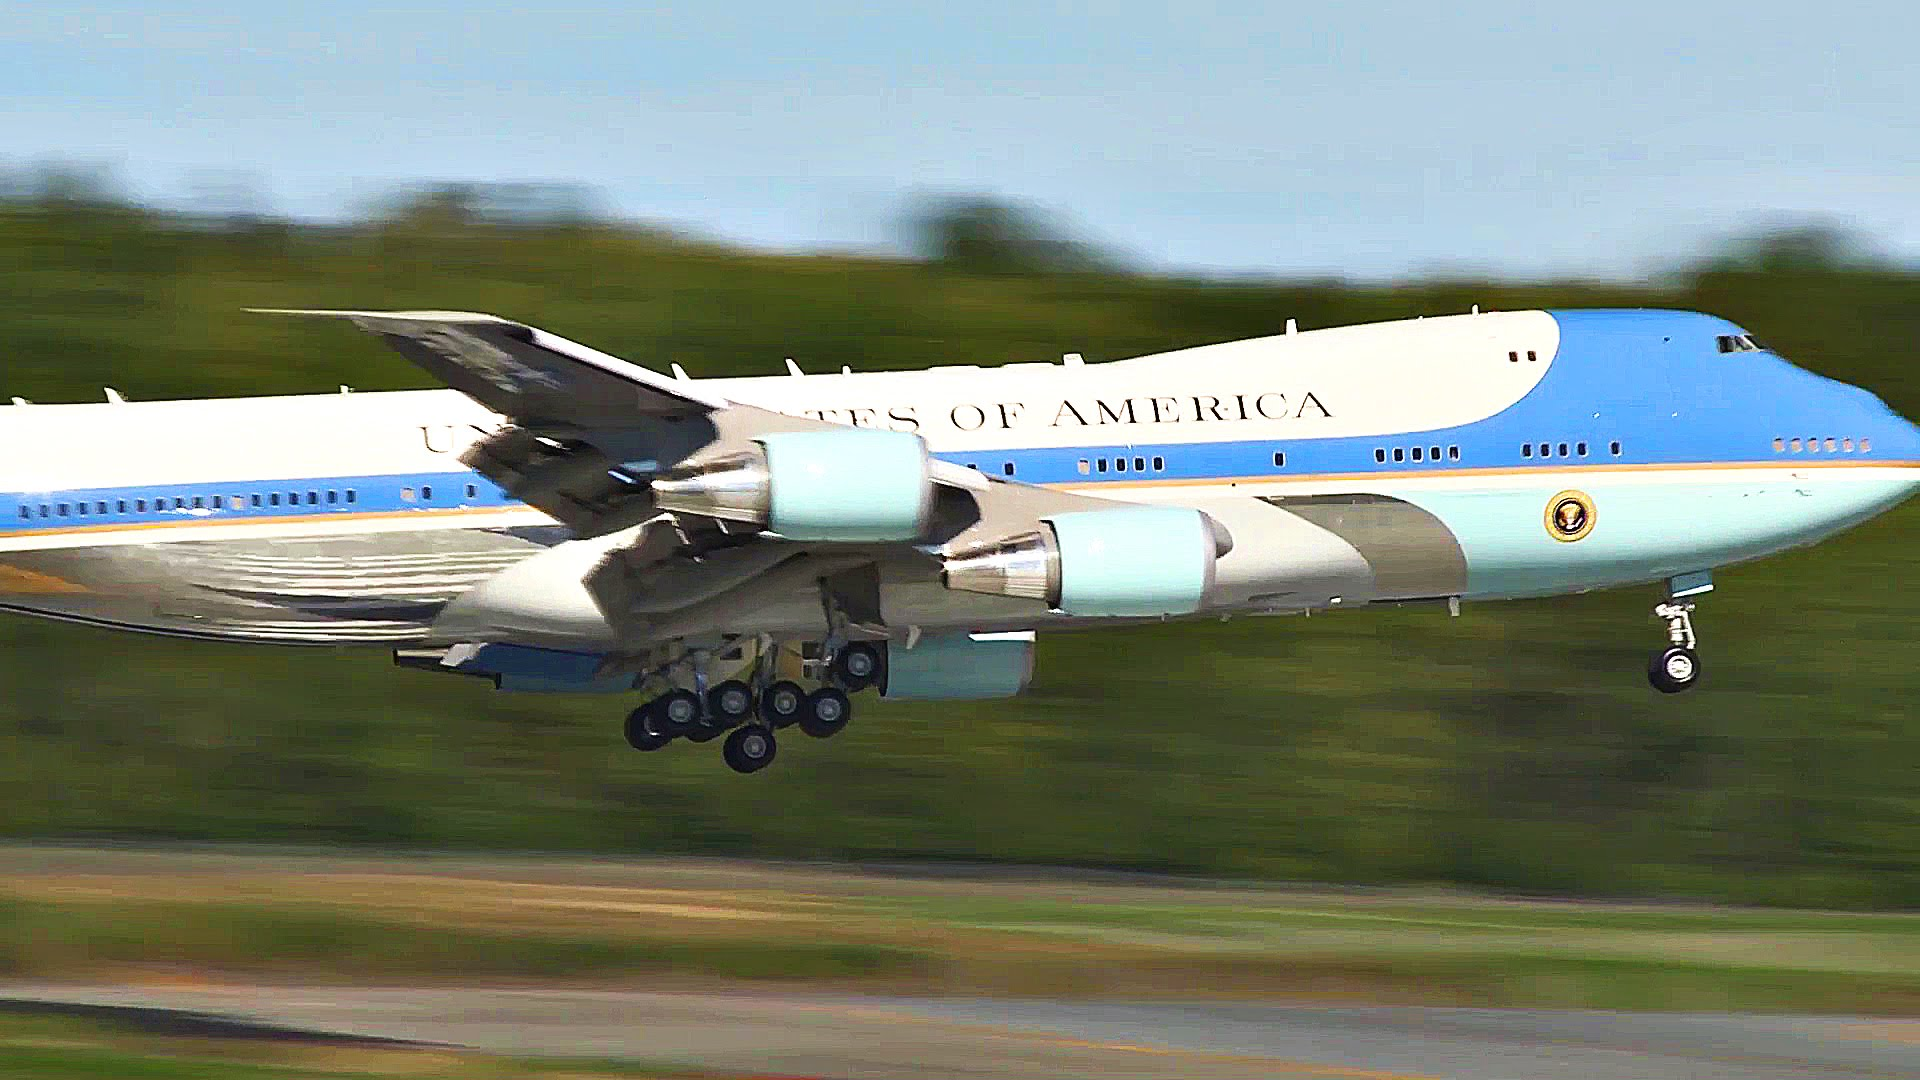 Air Force One 747 – World's Most 'Powerful' Aircraft Landing In Alaska